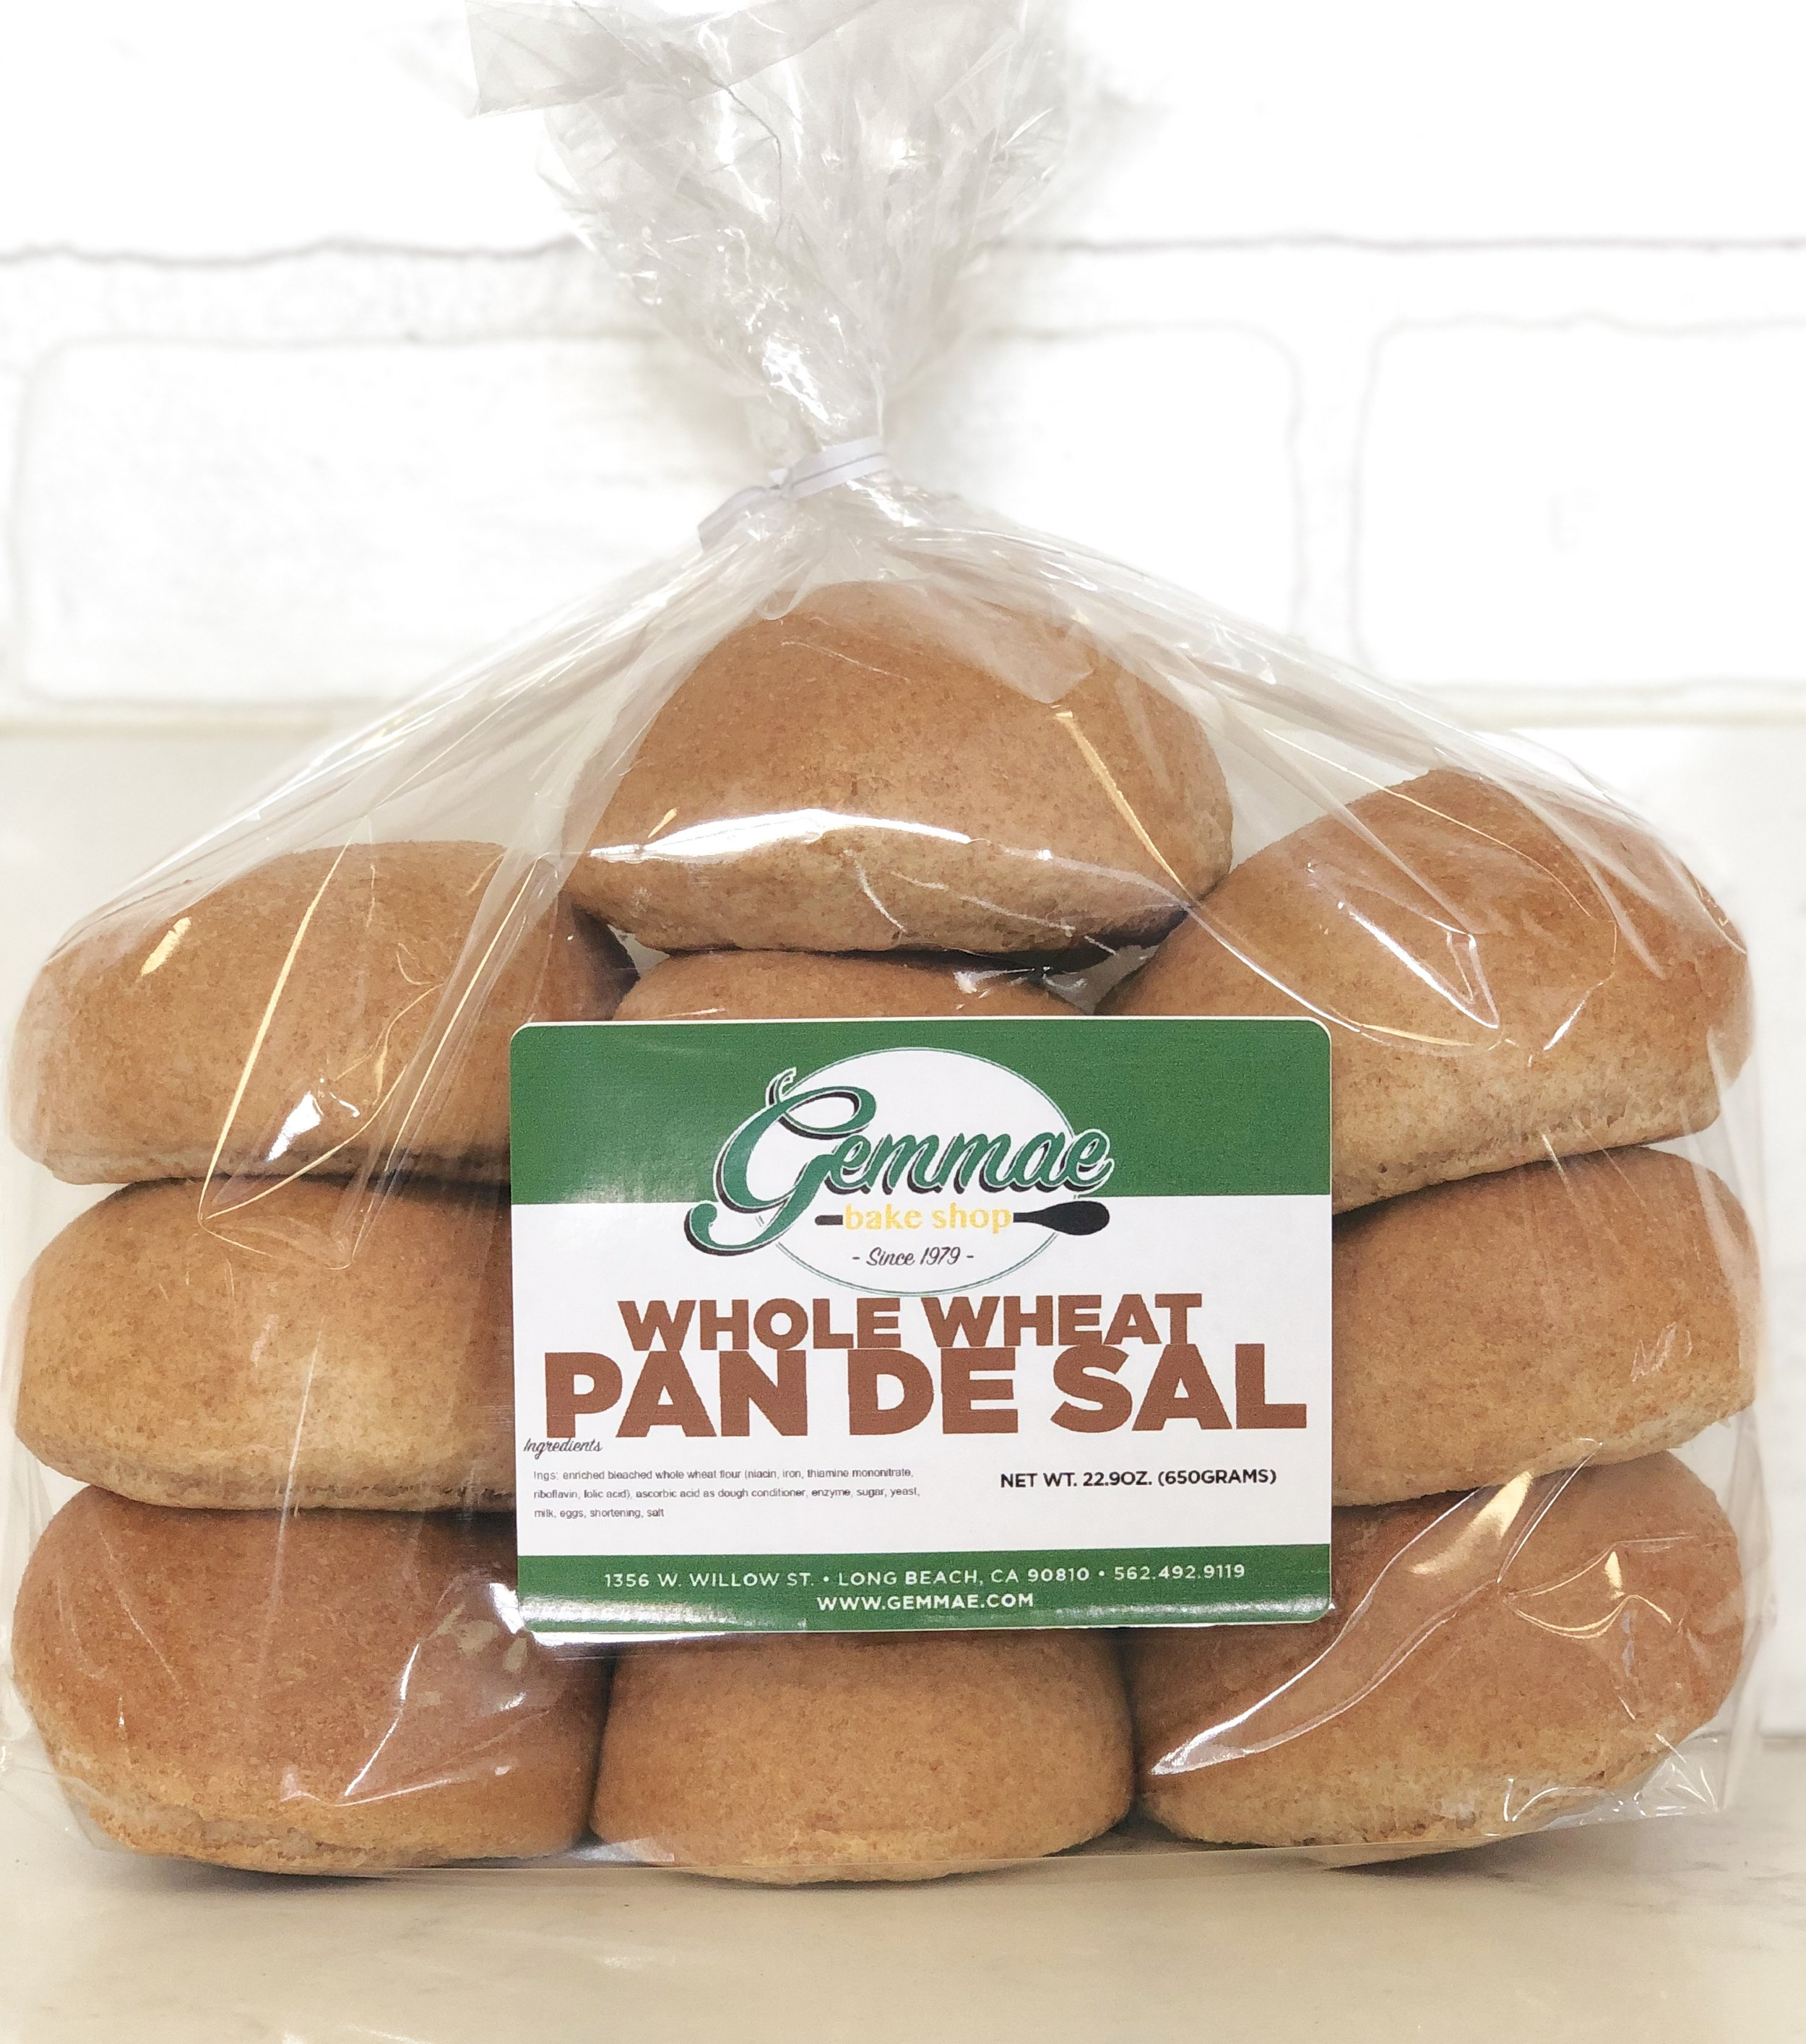 WHOLE WHEAT PAN DE SAL   Our traditional Filipino bread bun made with healthy whole wheat flour. Soft, fluffy, and baked every morning to ensure freshness. Each bag contains 10 bread buns. Best when toasted.